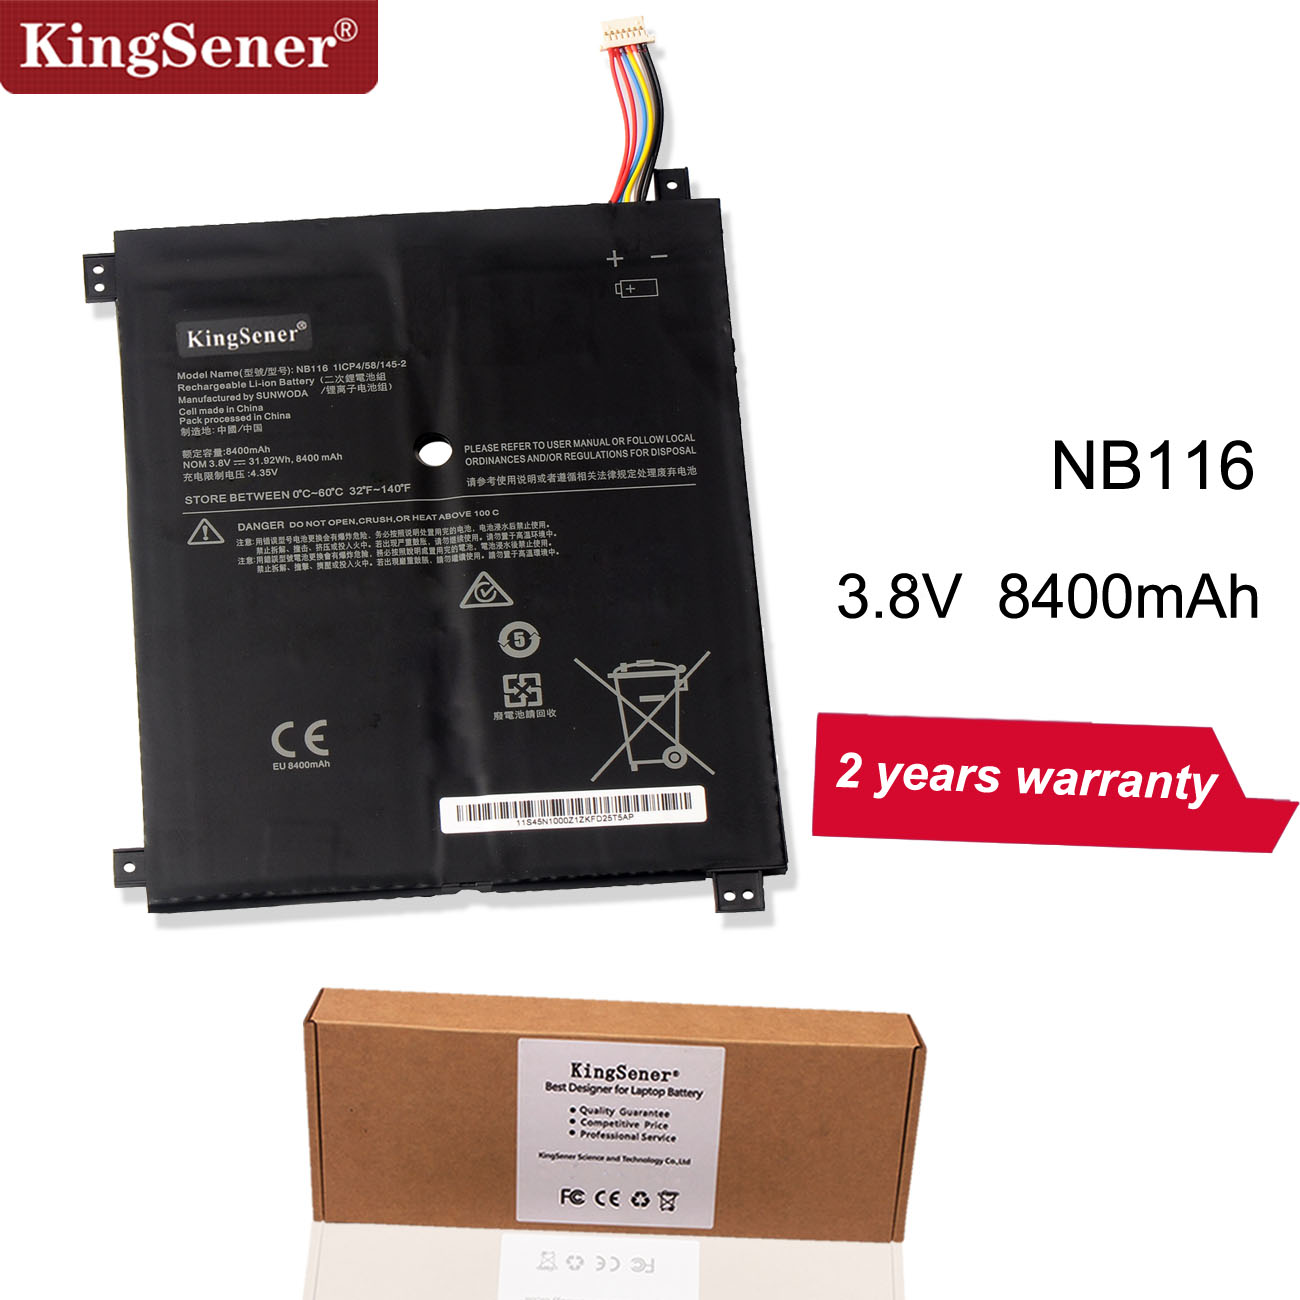 Kingsener NB116 Laptop Battery For Lenovo IdeaPAd 100S 100S-11IBY 100S-80R2 NB116 5B10K37675 0813001 3.8V 31.92WH 8400mAh